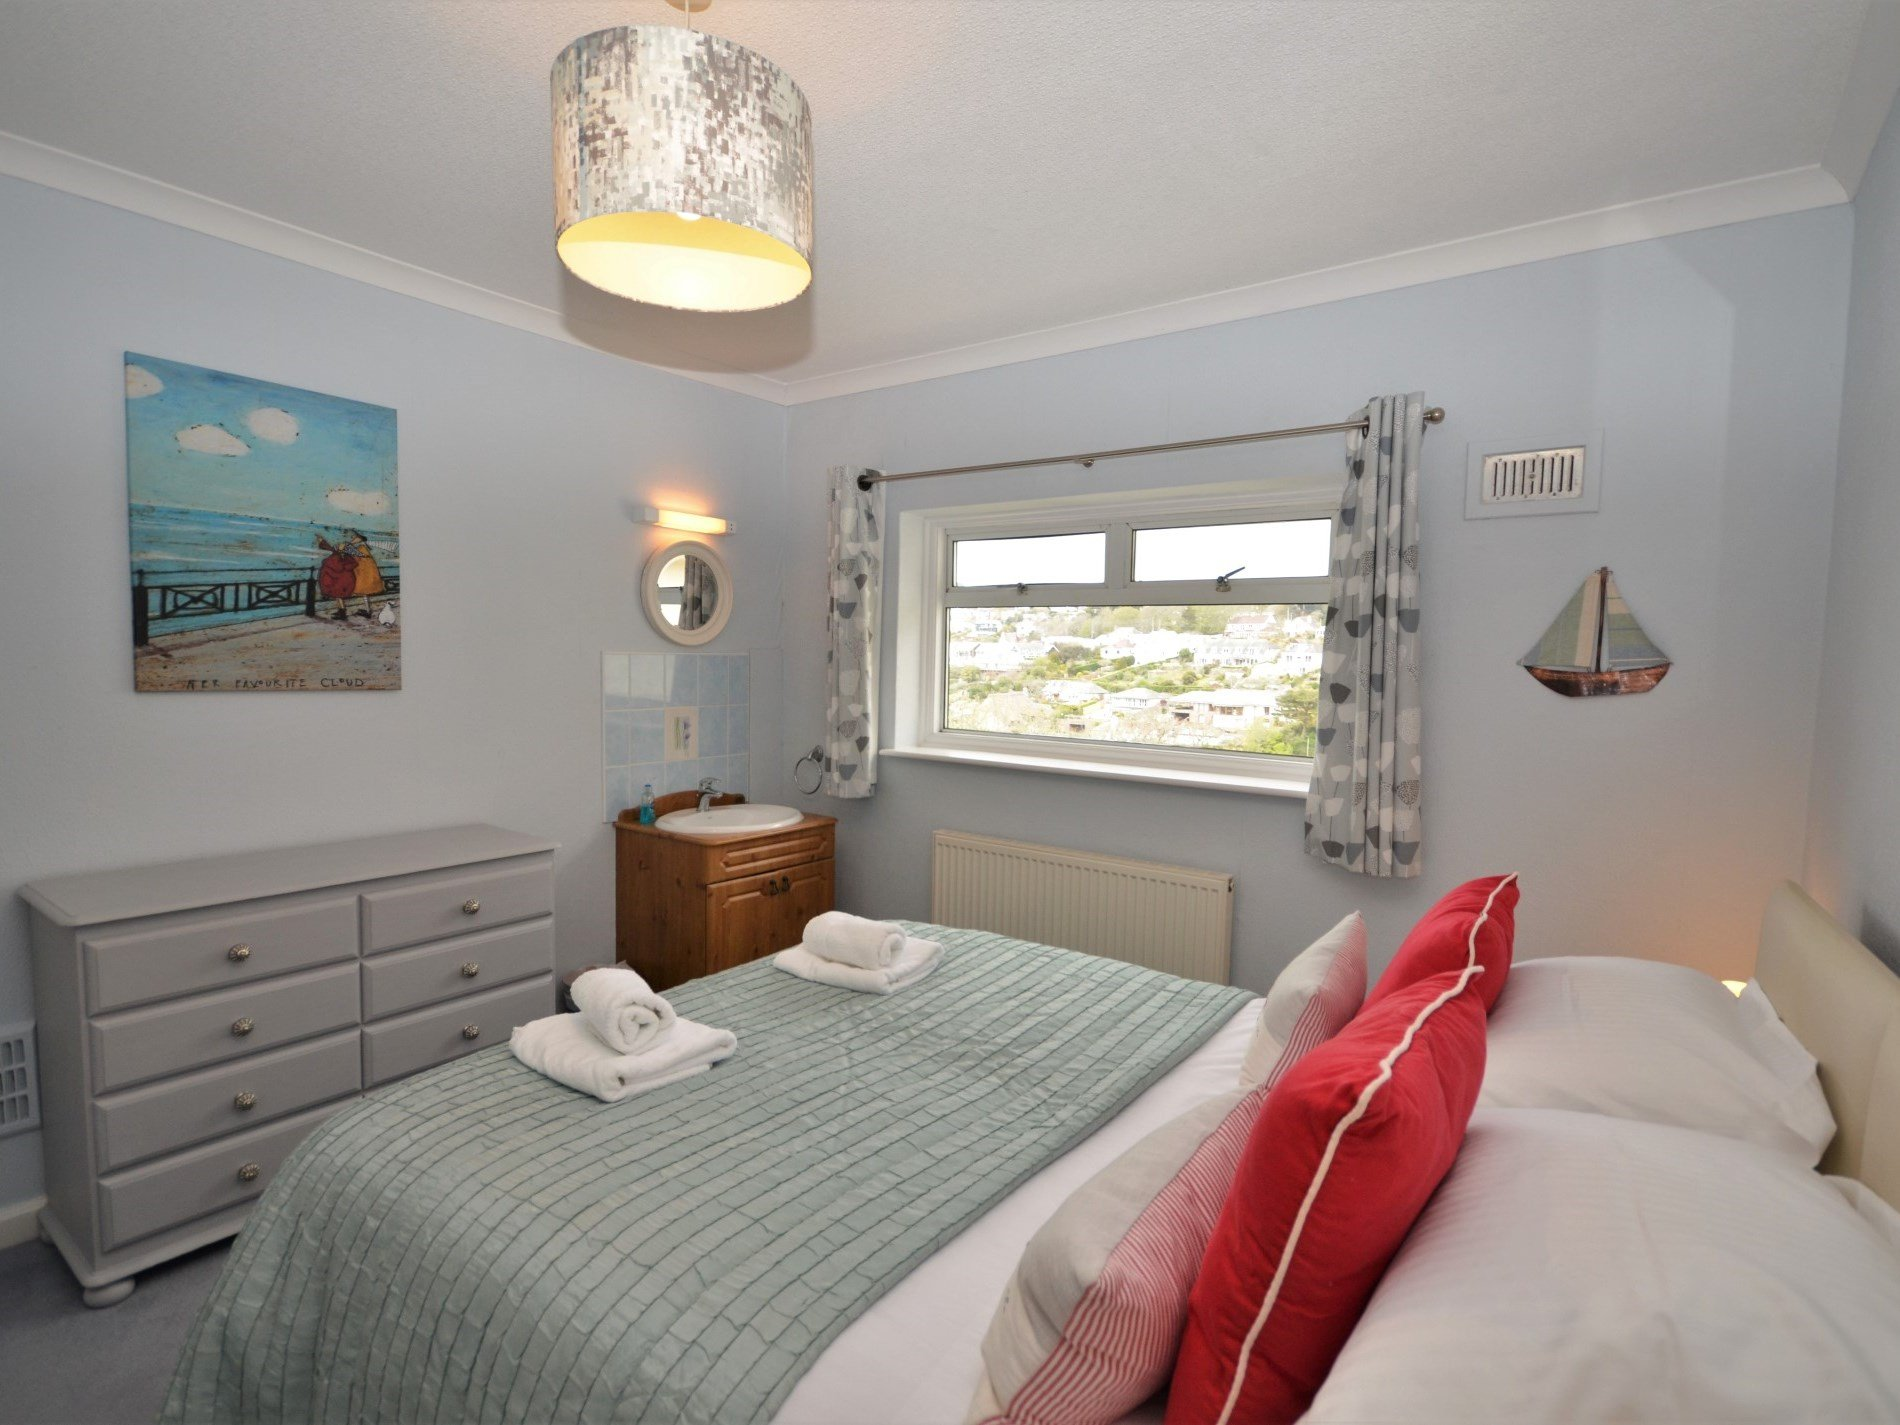 3 Bedroom Cottage in Plymouth, Devon